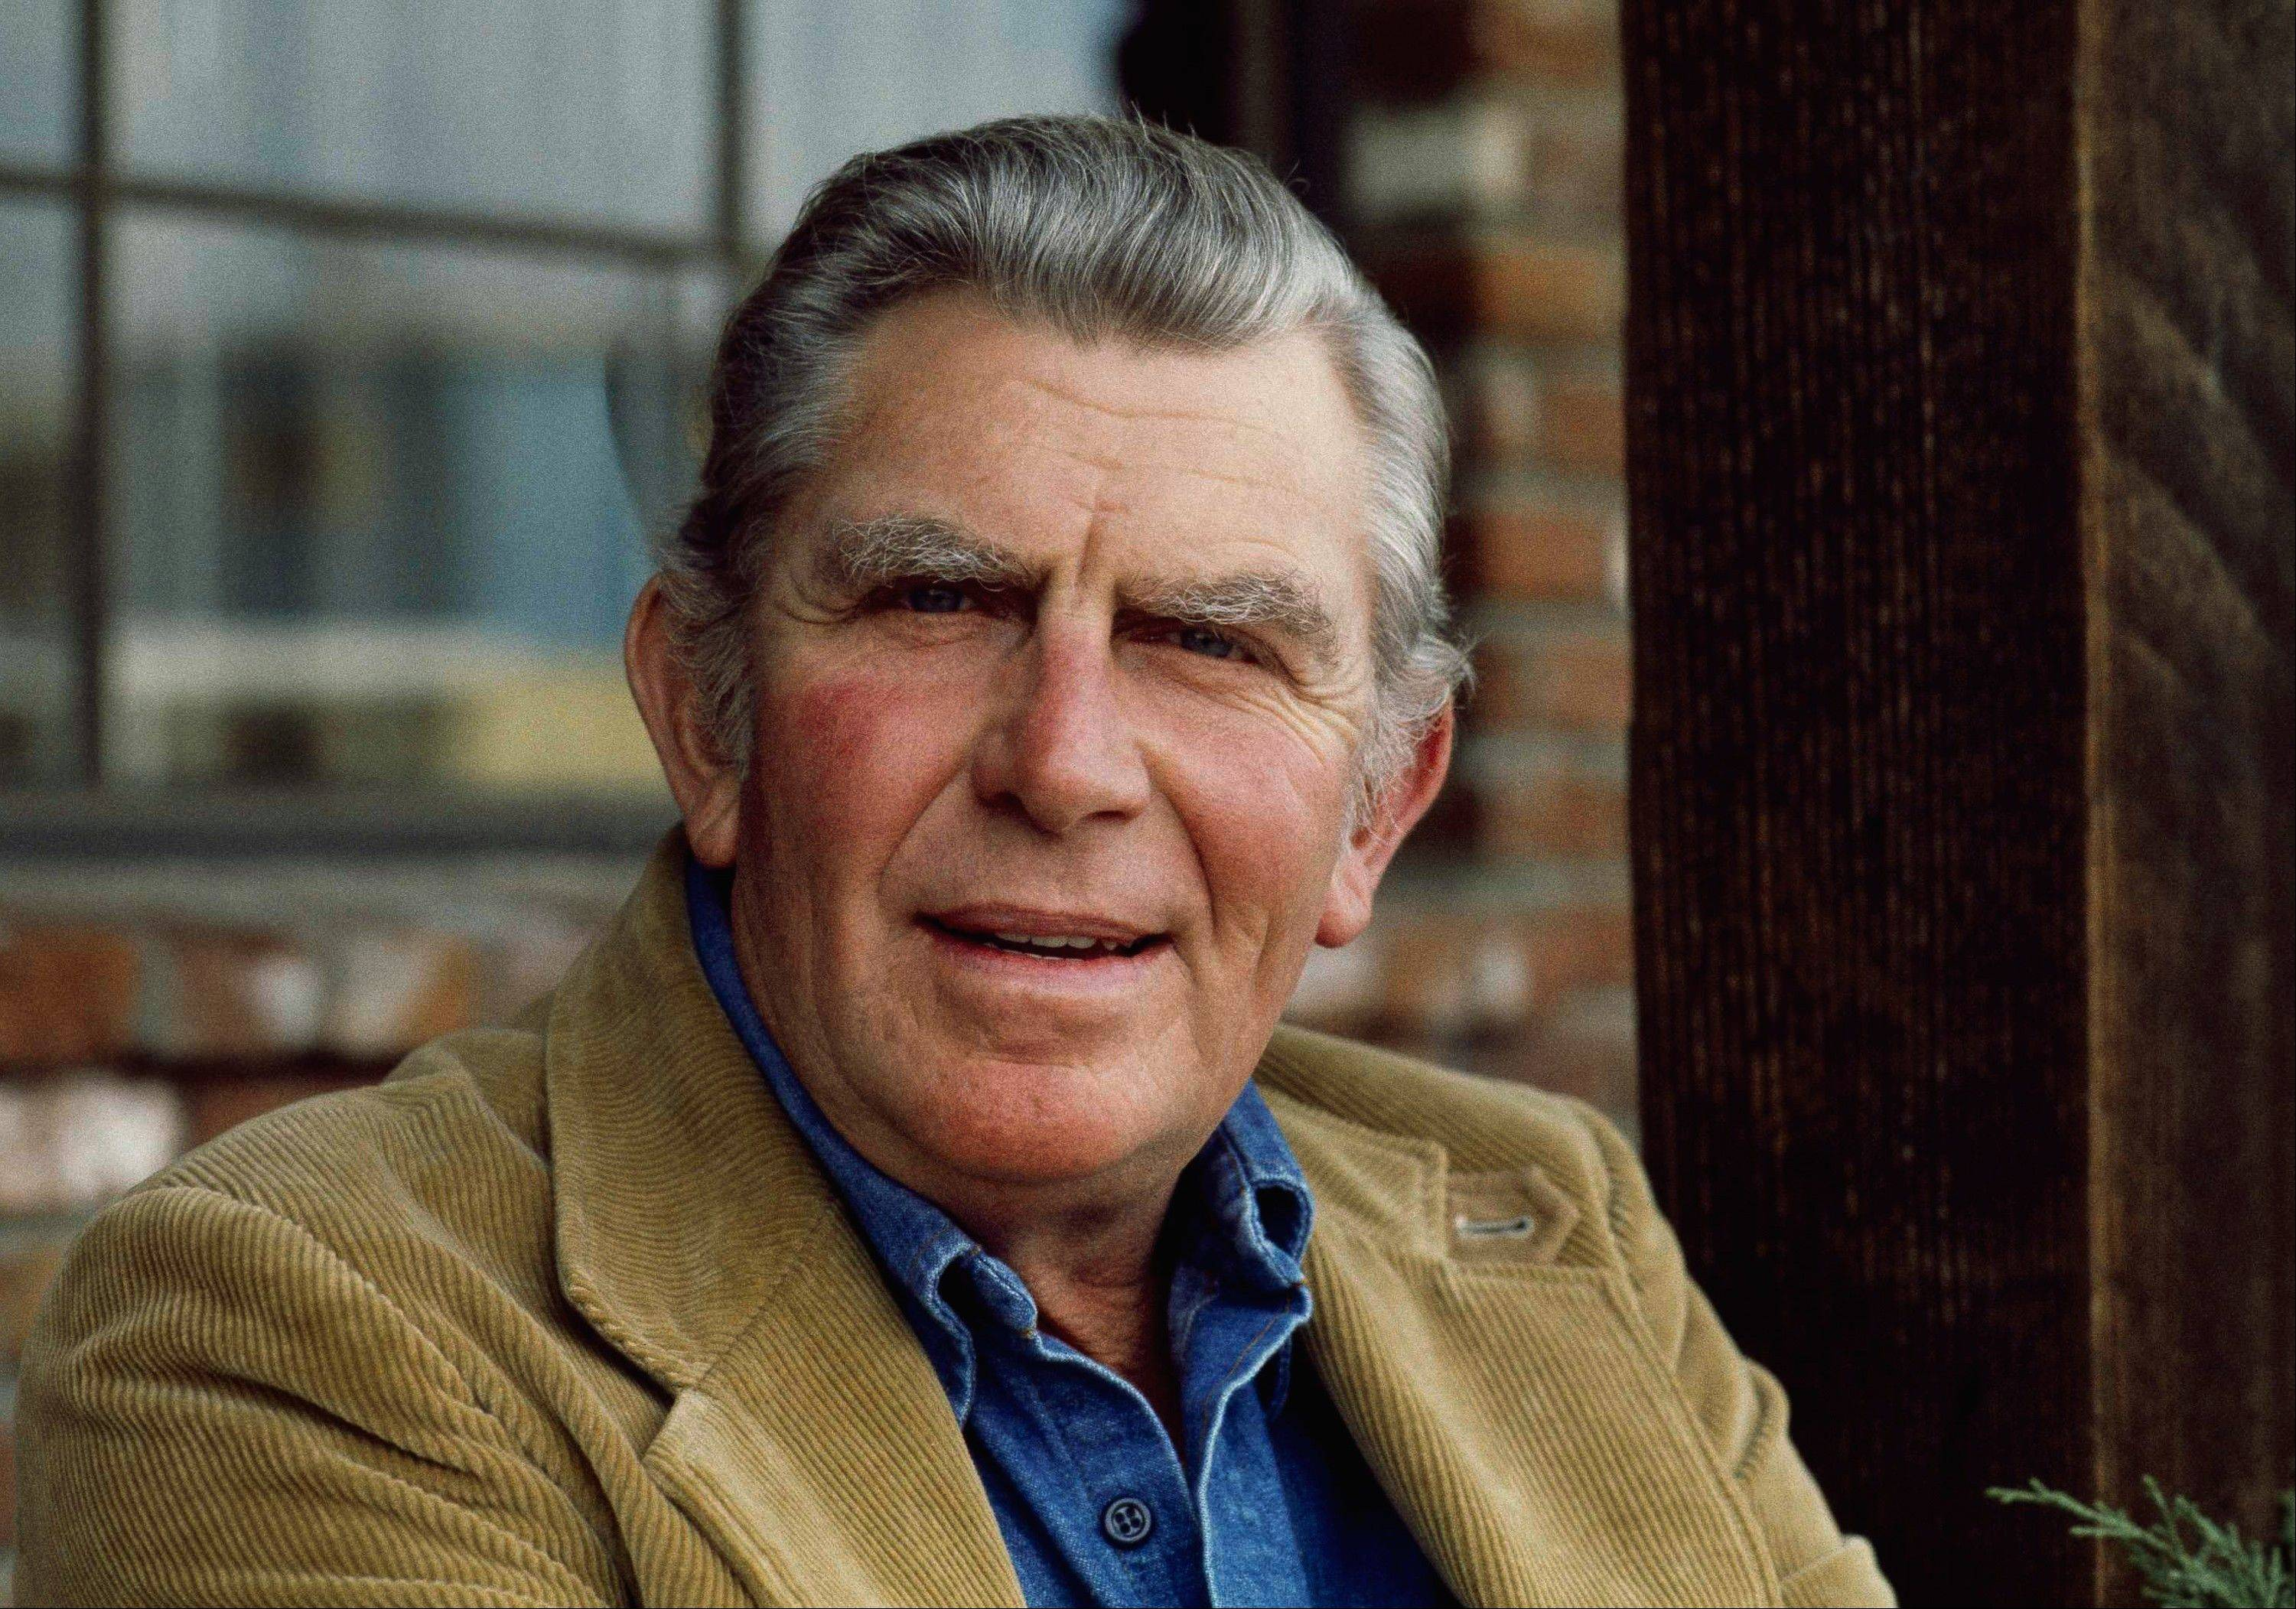 Actor Andy Griffith, whose homespun mix of humor and wisdom made �The Andy Griffith Show� an enduring TV favorite, died July 3 in Manteo, N.C. He was 86.